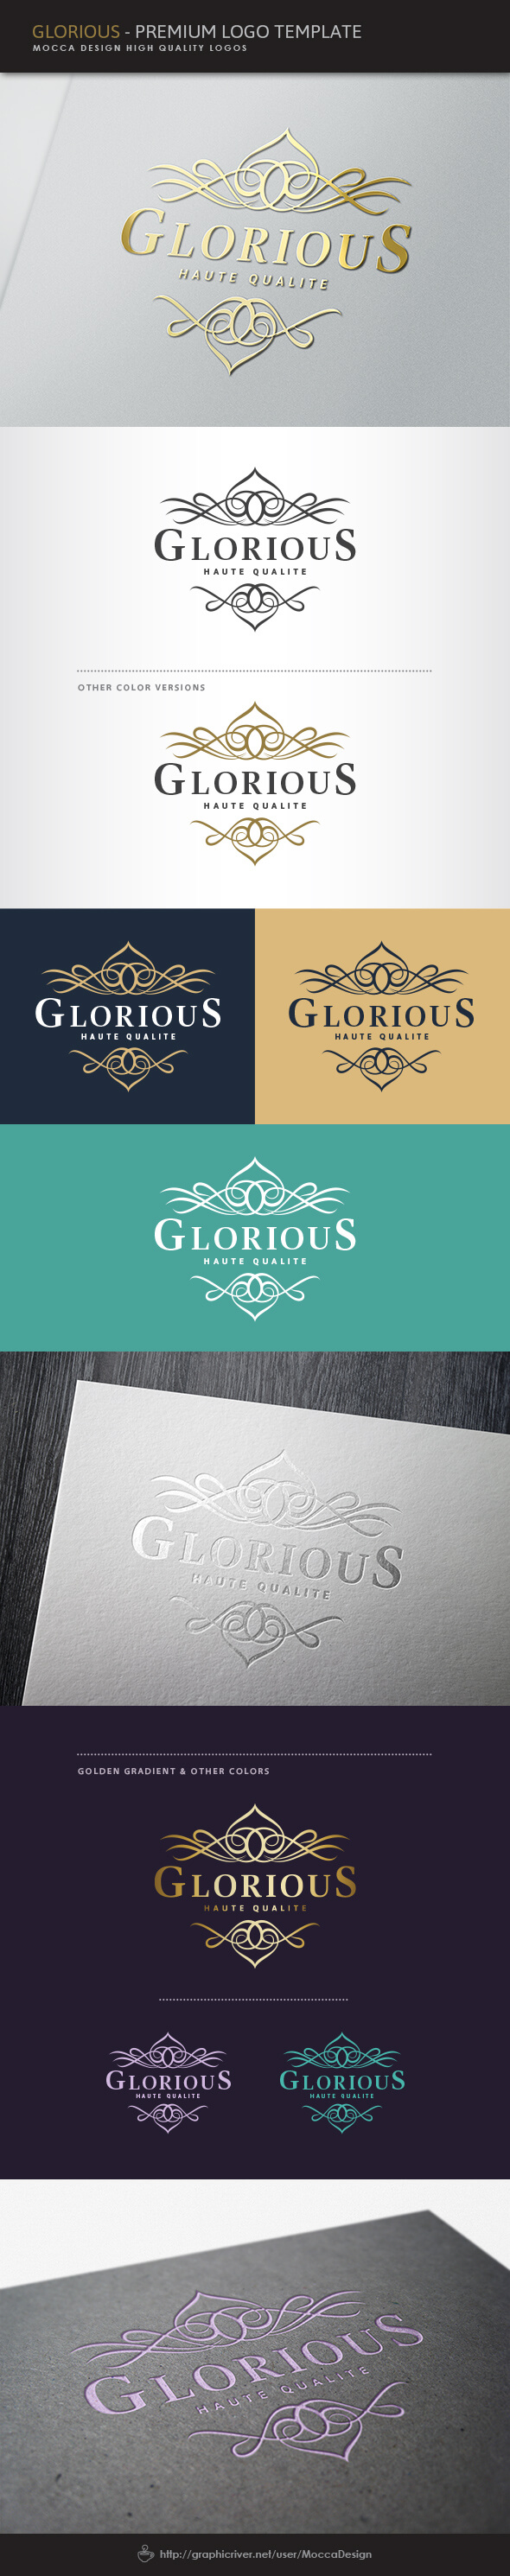 Glorious Logo by moccadsgn